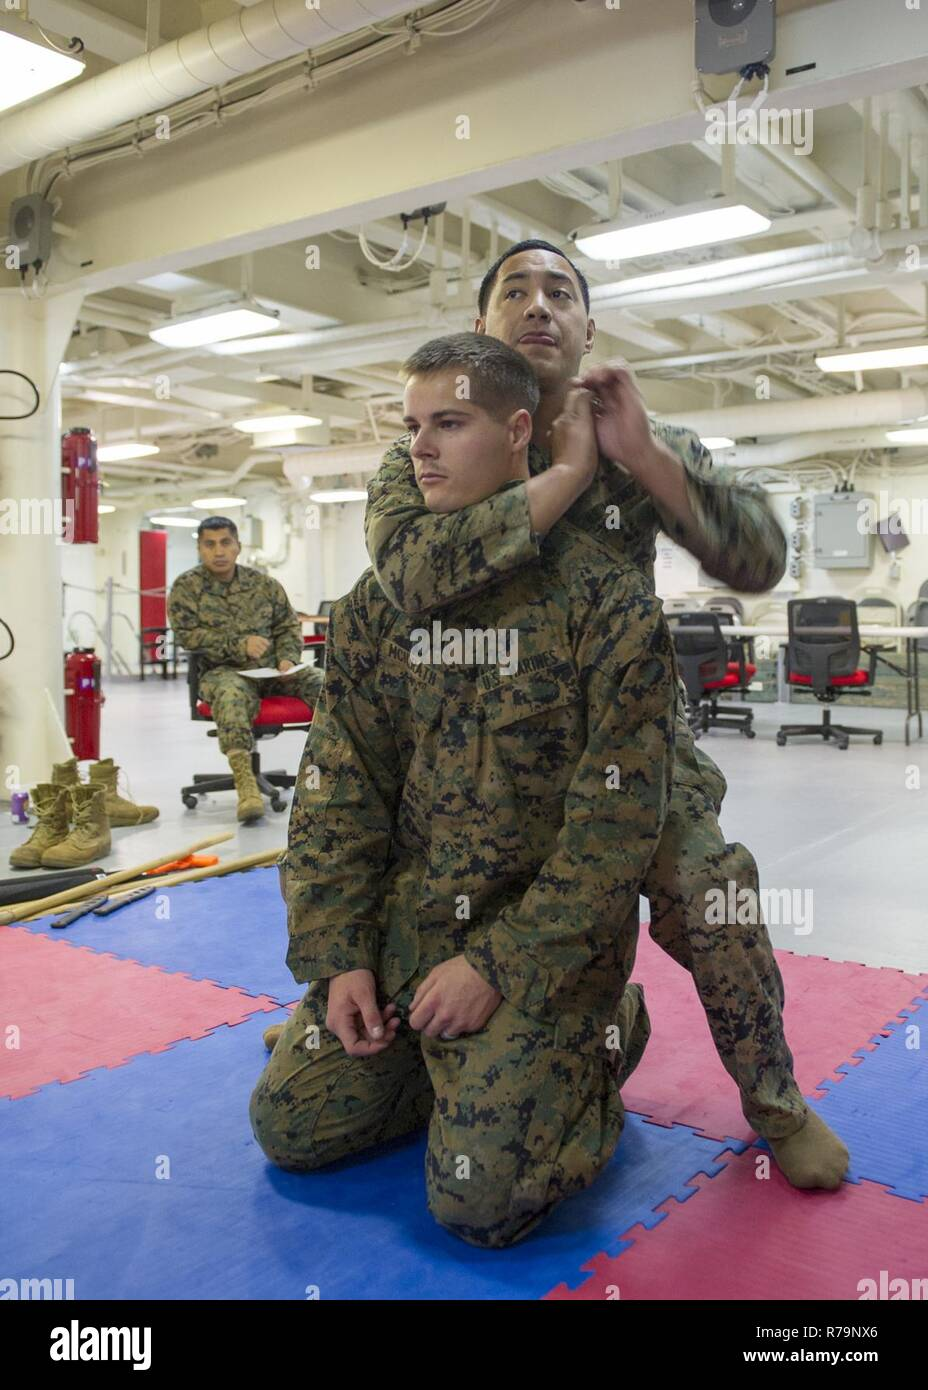 PACIFIC OCEAN (April 10, 2017) Marine Lance Cpl. Stefan Mcilrath (front) and Staff Sgt. Kaluaokal Kaiahua (back), both assigned to Marine Expeditionary Unit (MEU) 15, practice mixed martial arts during a Marine Corps Martial Arts Program (MCMAP) training exercise aboard the amphibious assault ship USS America (LHA 6). America is currently underway with more than 1,000 Sailors and 1,600 embarked Marines conducting Amphibious Squadron/Marine Expeditionary Unit Integration operations in preparation for the ship's maiden deployment later this year. - Stock Image